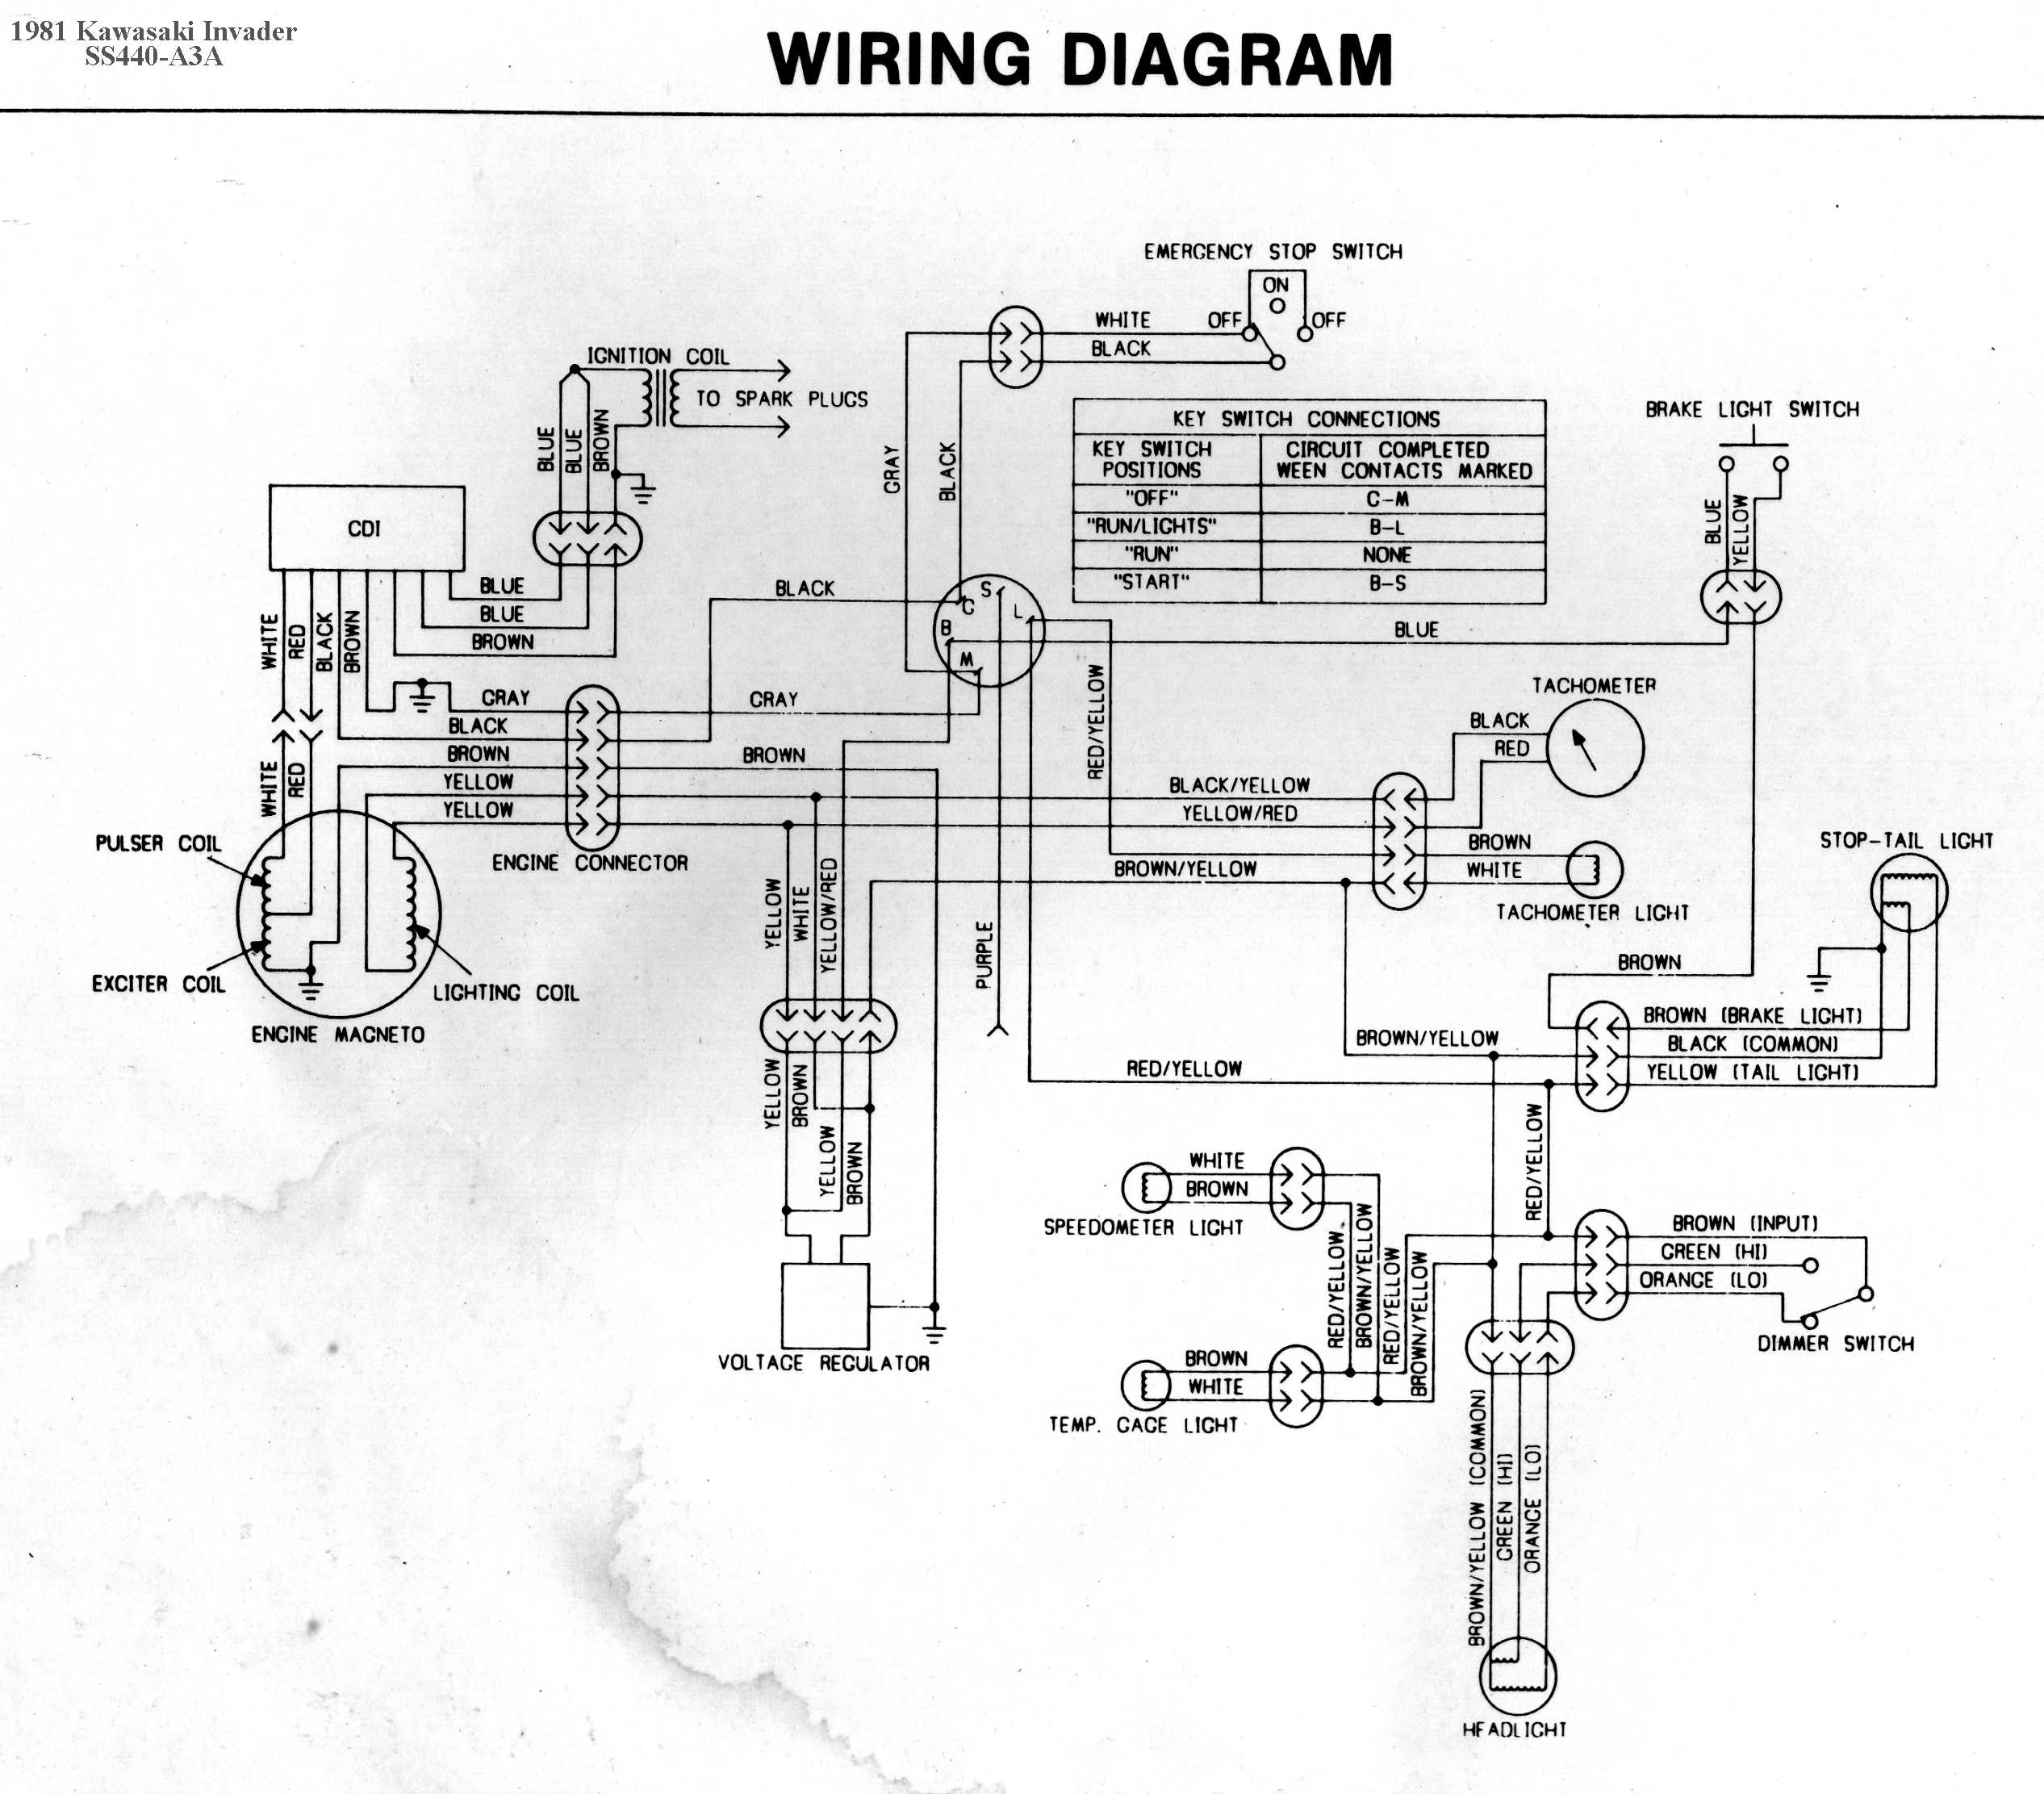 snowmobile wiring diagram schema diagram database snowmobile wiring diagrams snowmobile wiring diagram [ 2533 x 2223 Pixel ]